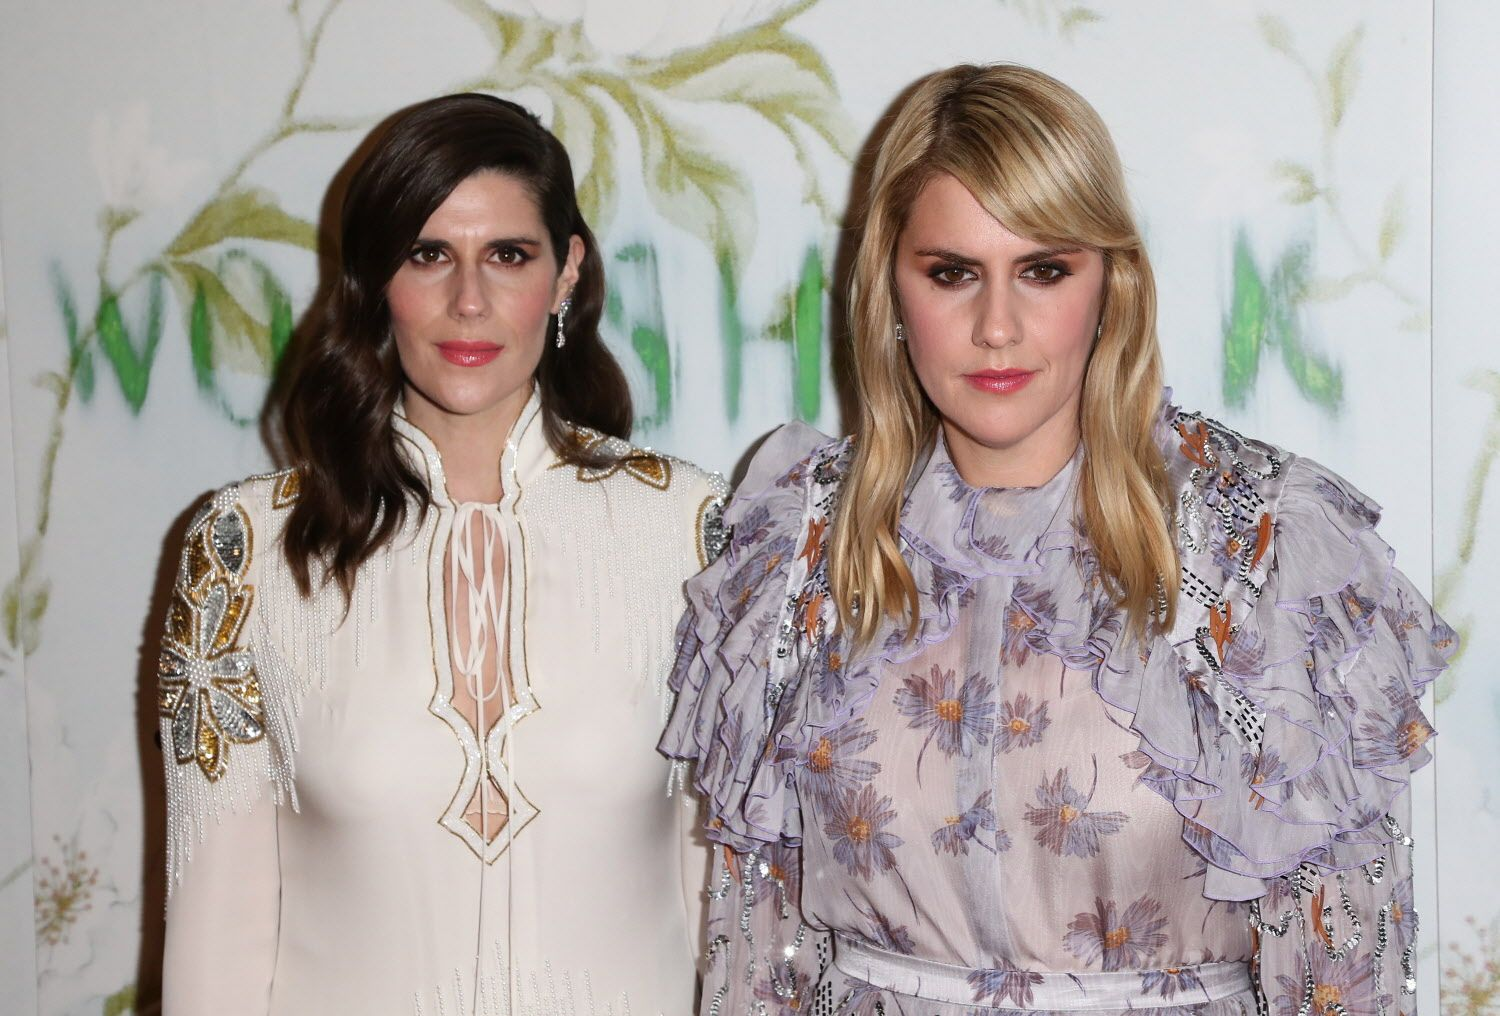 Laura Mulleavy and Kate Mulleavy are photographed on Sept. 18, 2017 at the 'Woodshock' film premiere in Los Angeles. (Buchan/Rex Shutterstock/Zuma Press/TNS)